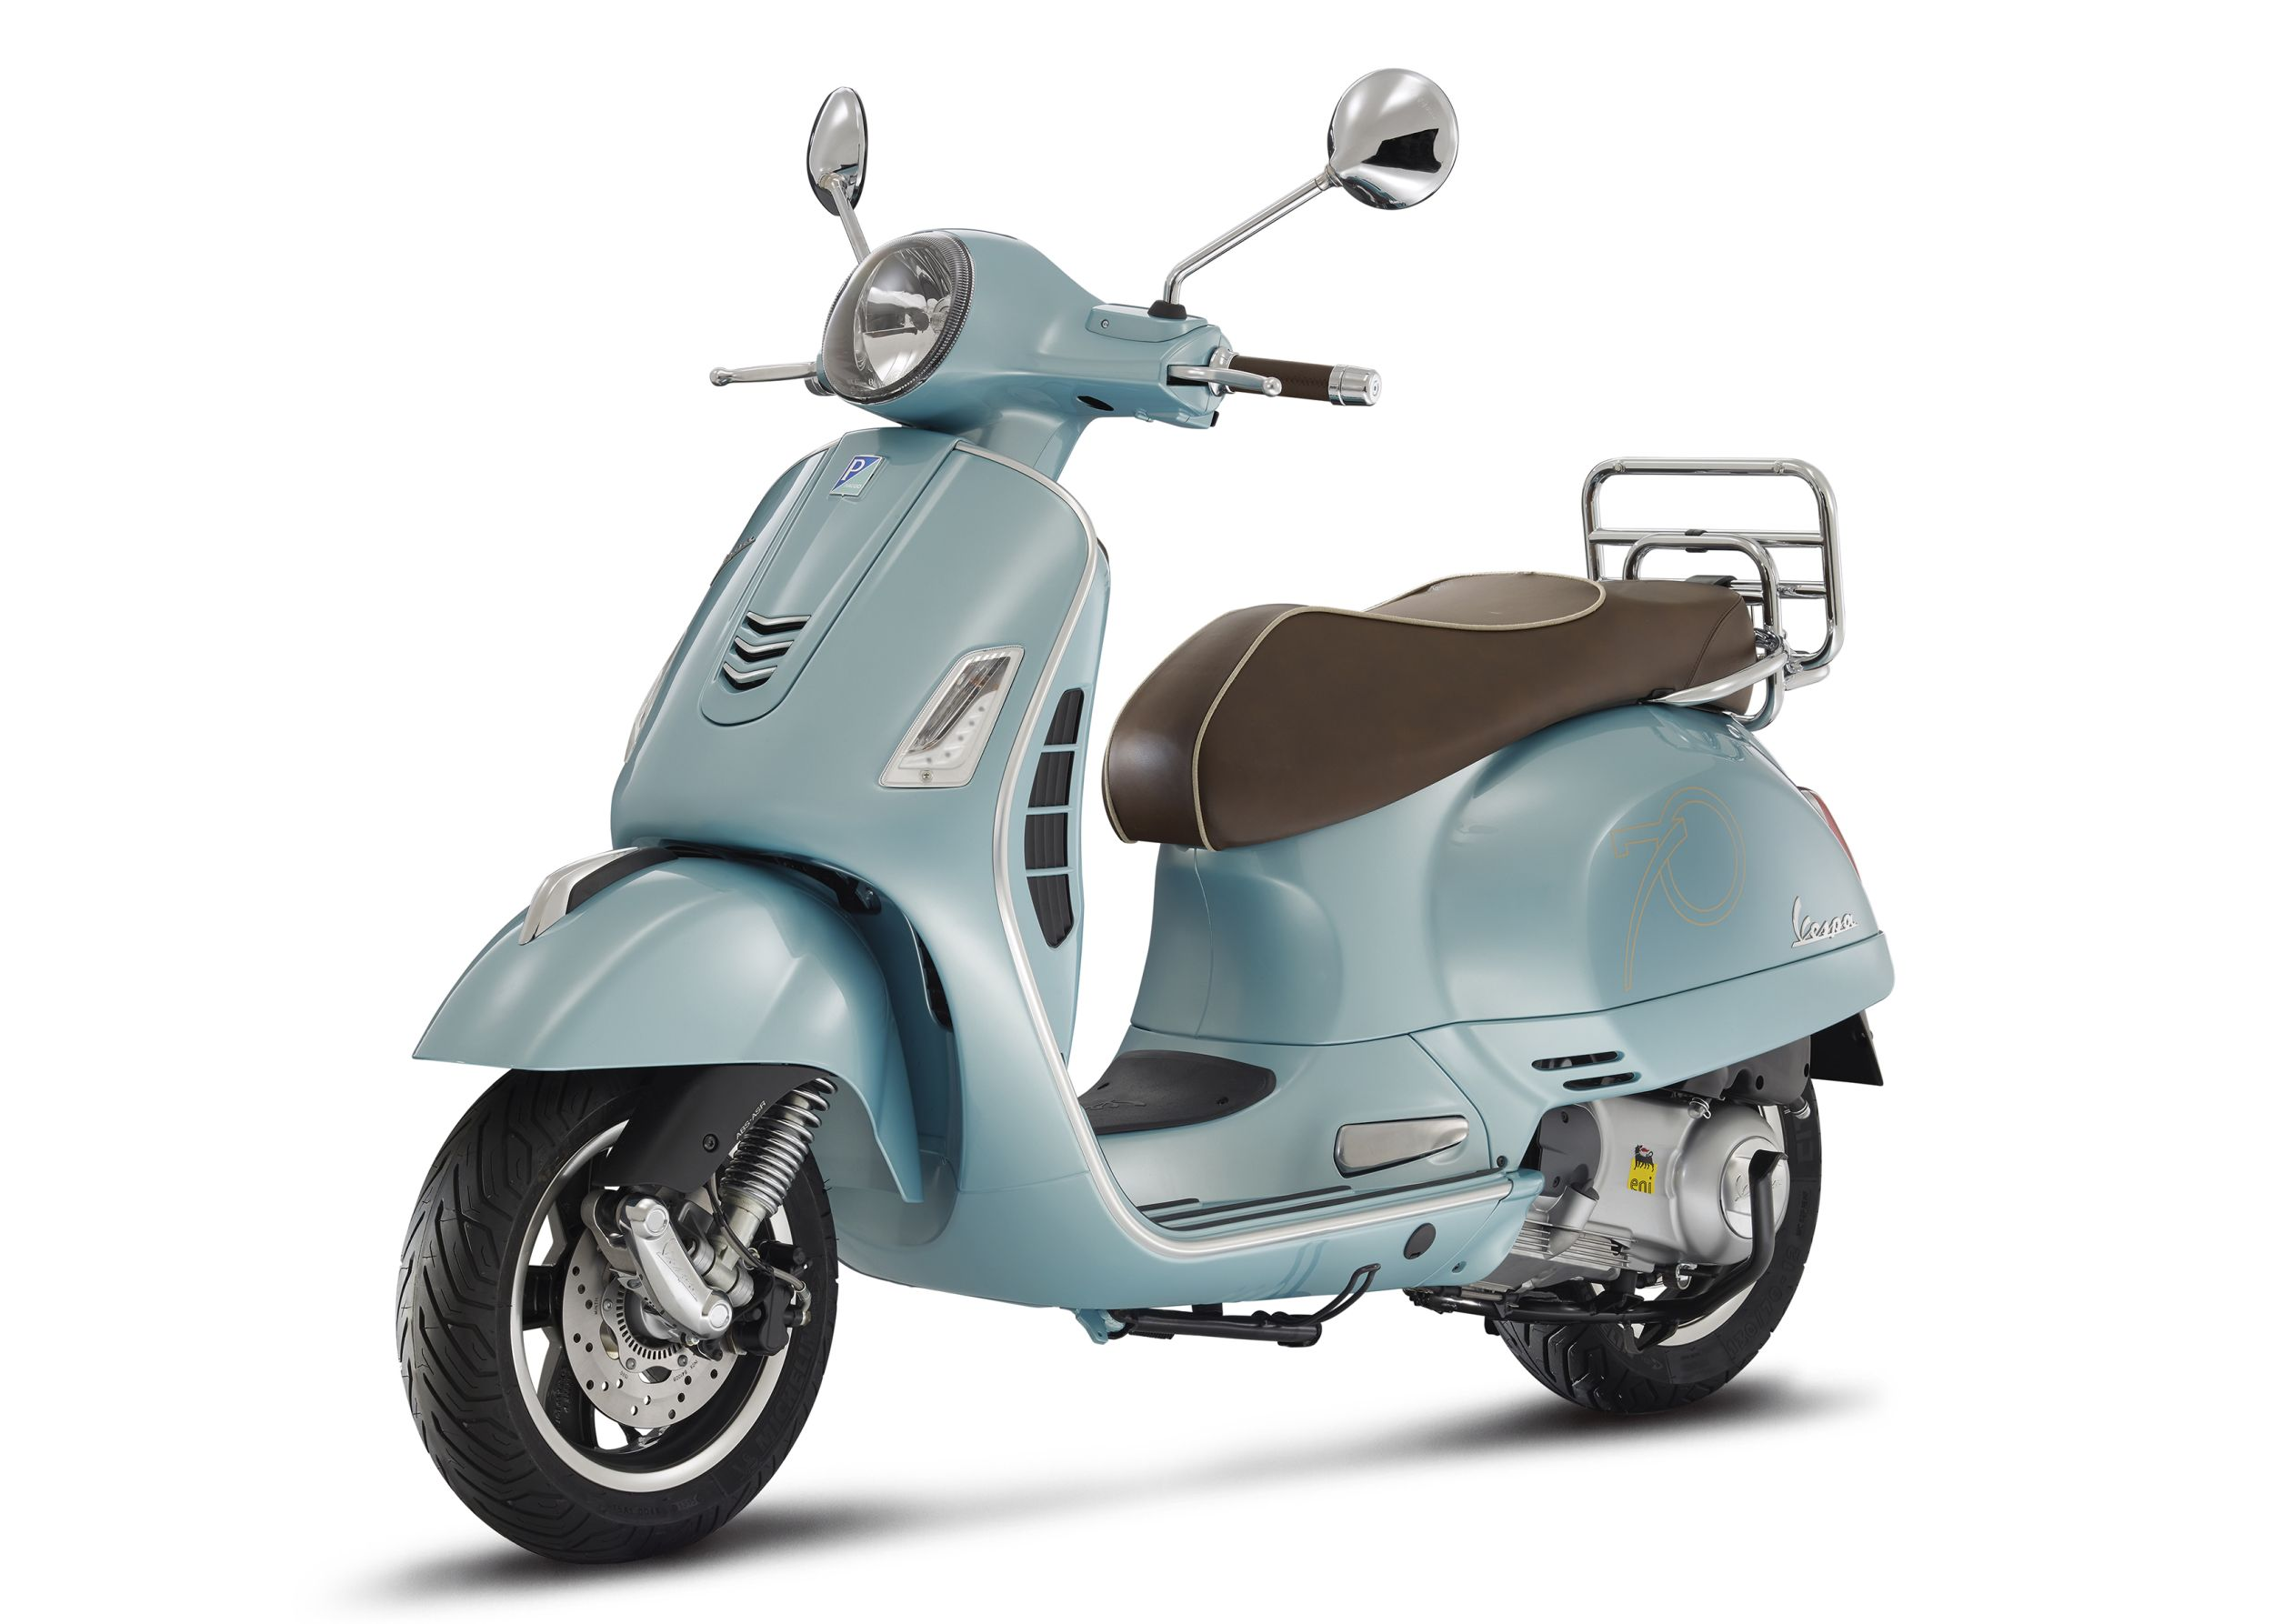 vespa gts 125 i e 70 anniversary all technical data of the model gts 125 i e 70. Black Bedroom Furniture Sets. Home Design Ideas